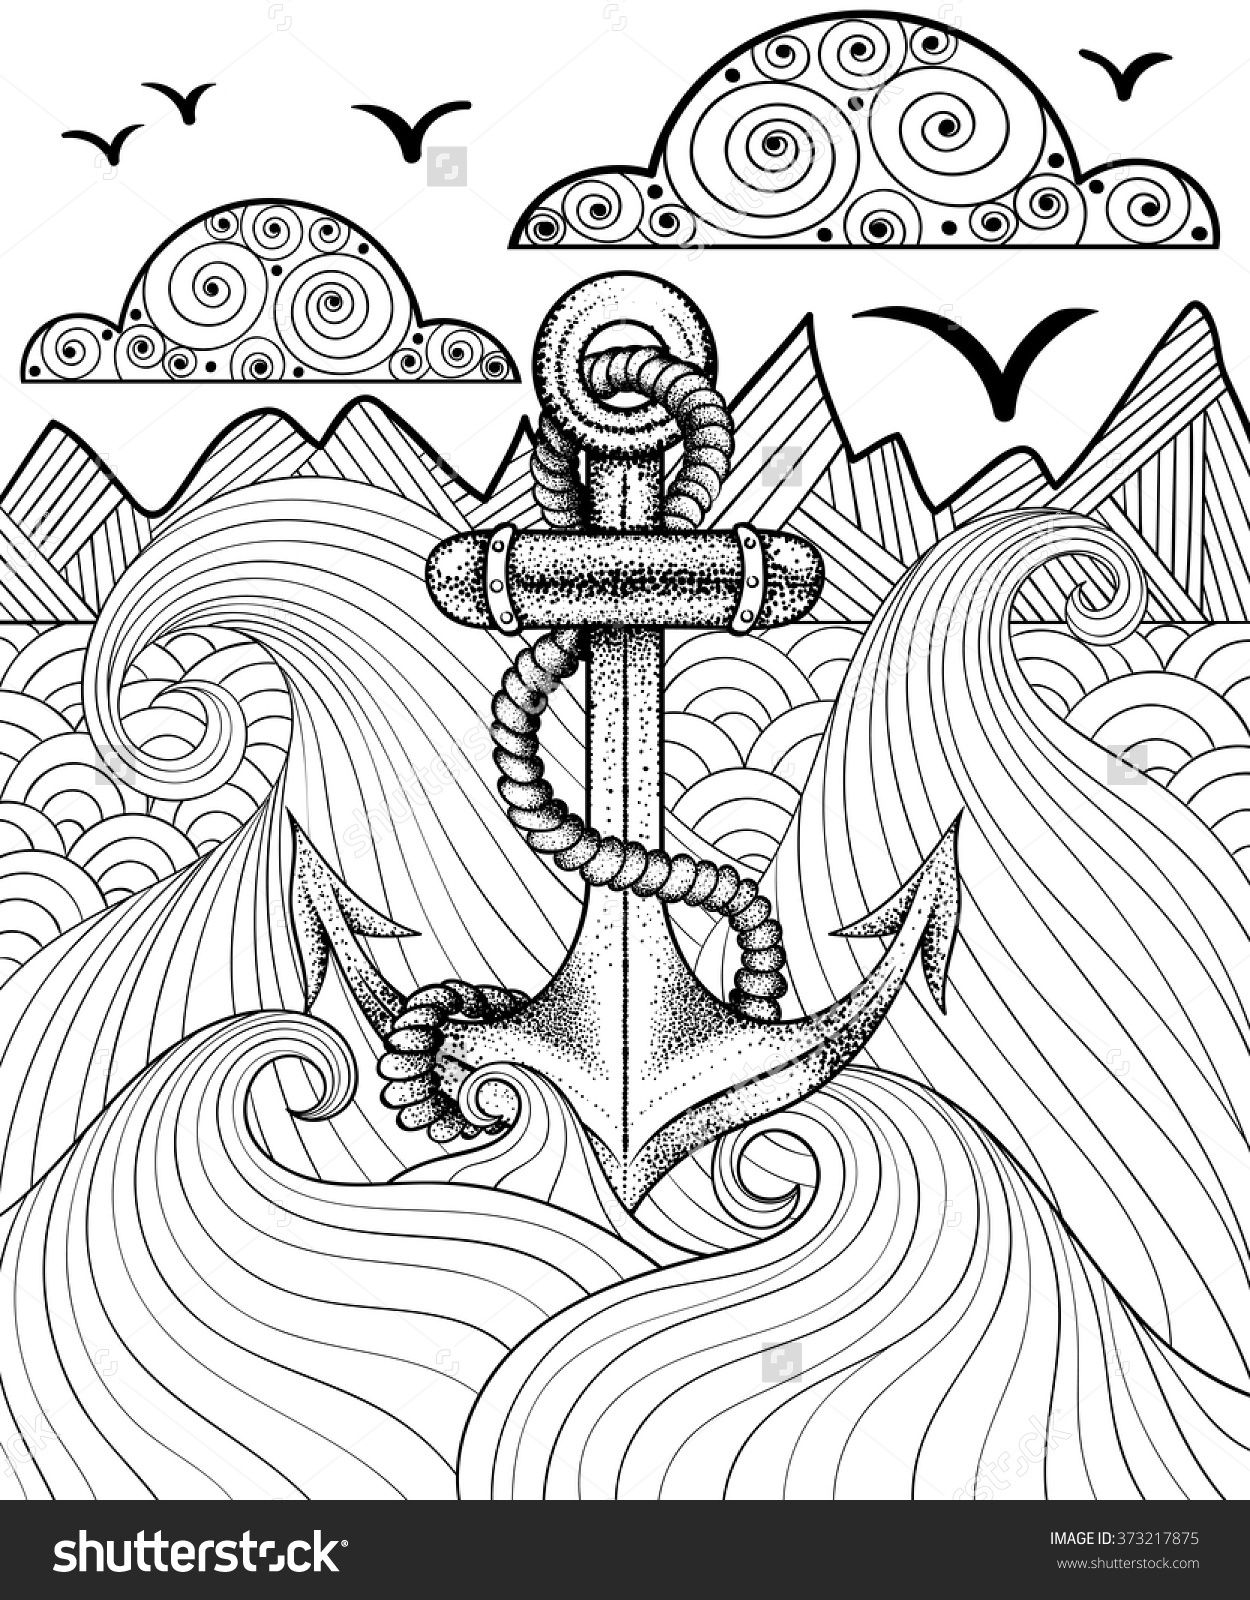 vector zentangle print for coloring page hand drawn